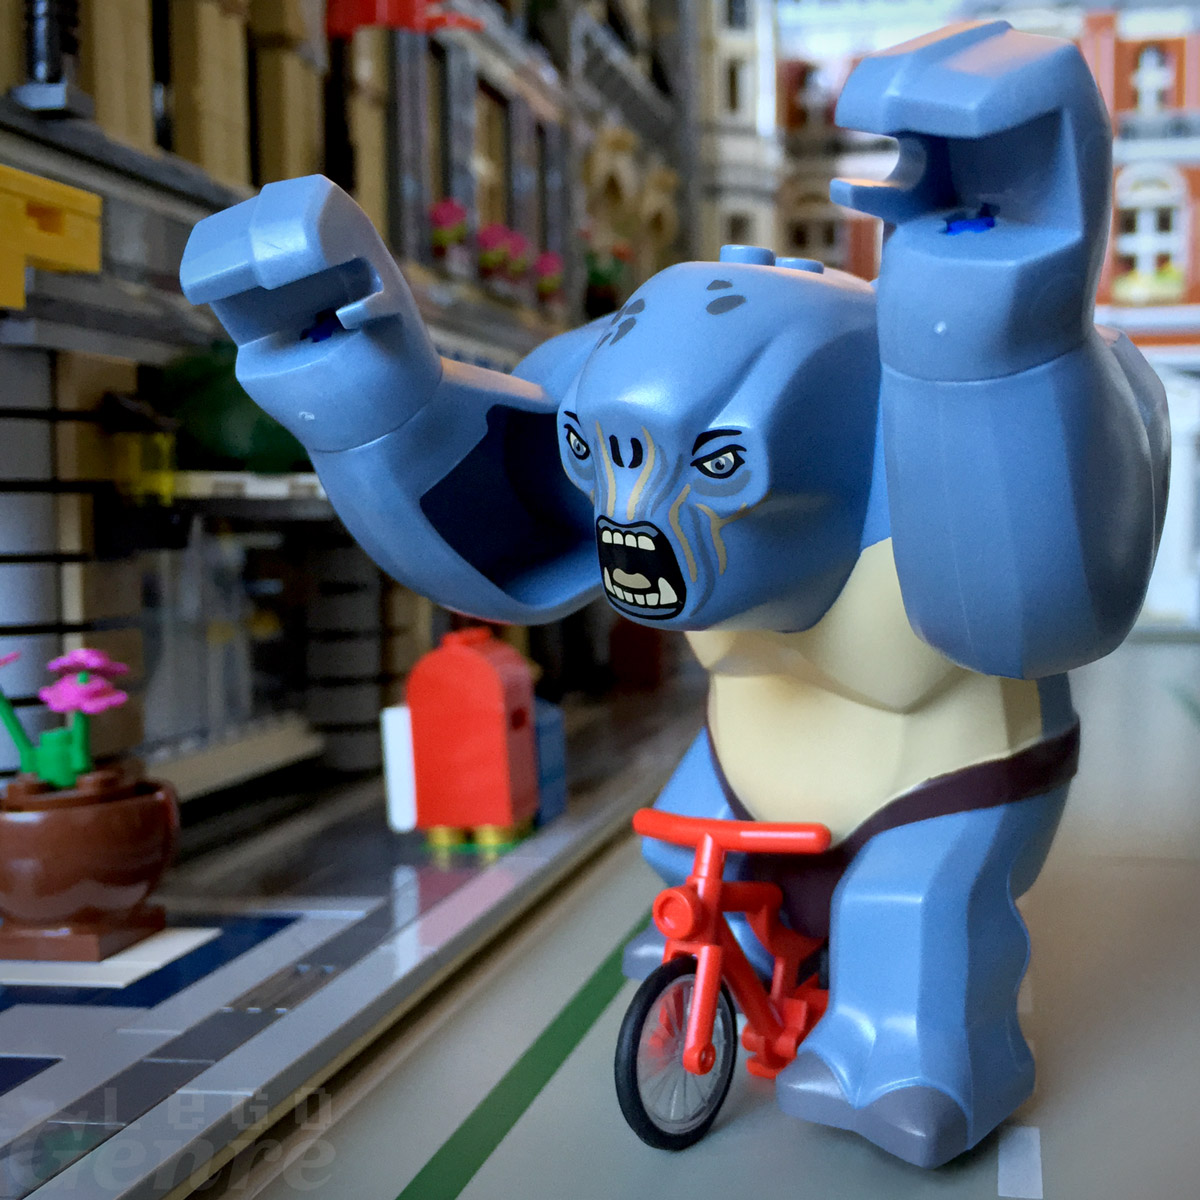 LegoGenre: Look Ma, No Hands!